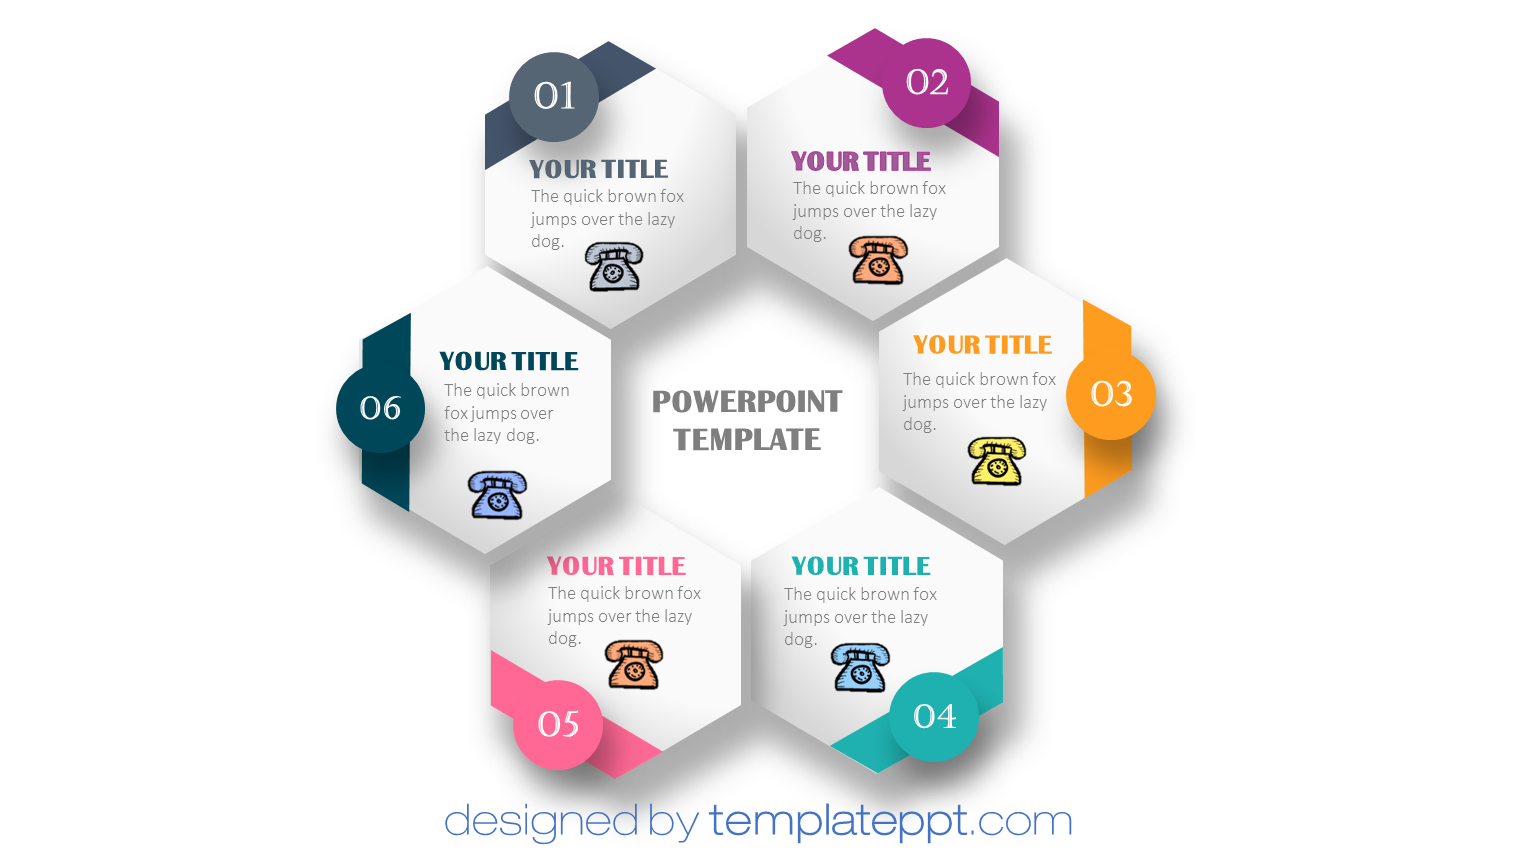 Best animated ppt templates free download download pinterest best animated ppt templates free download toneelgroepblik